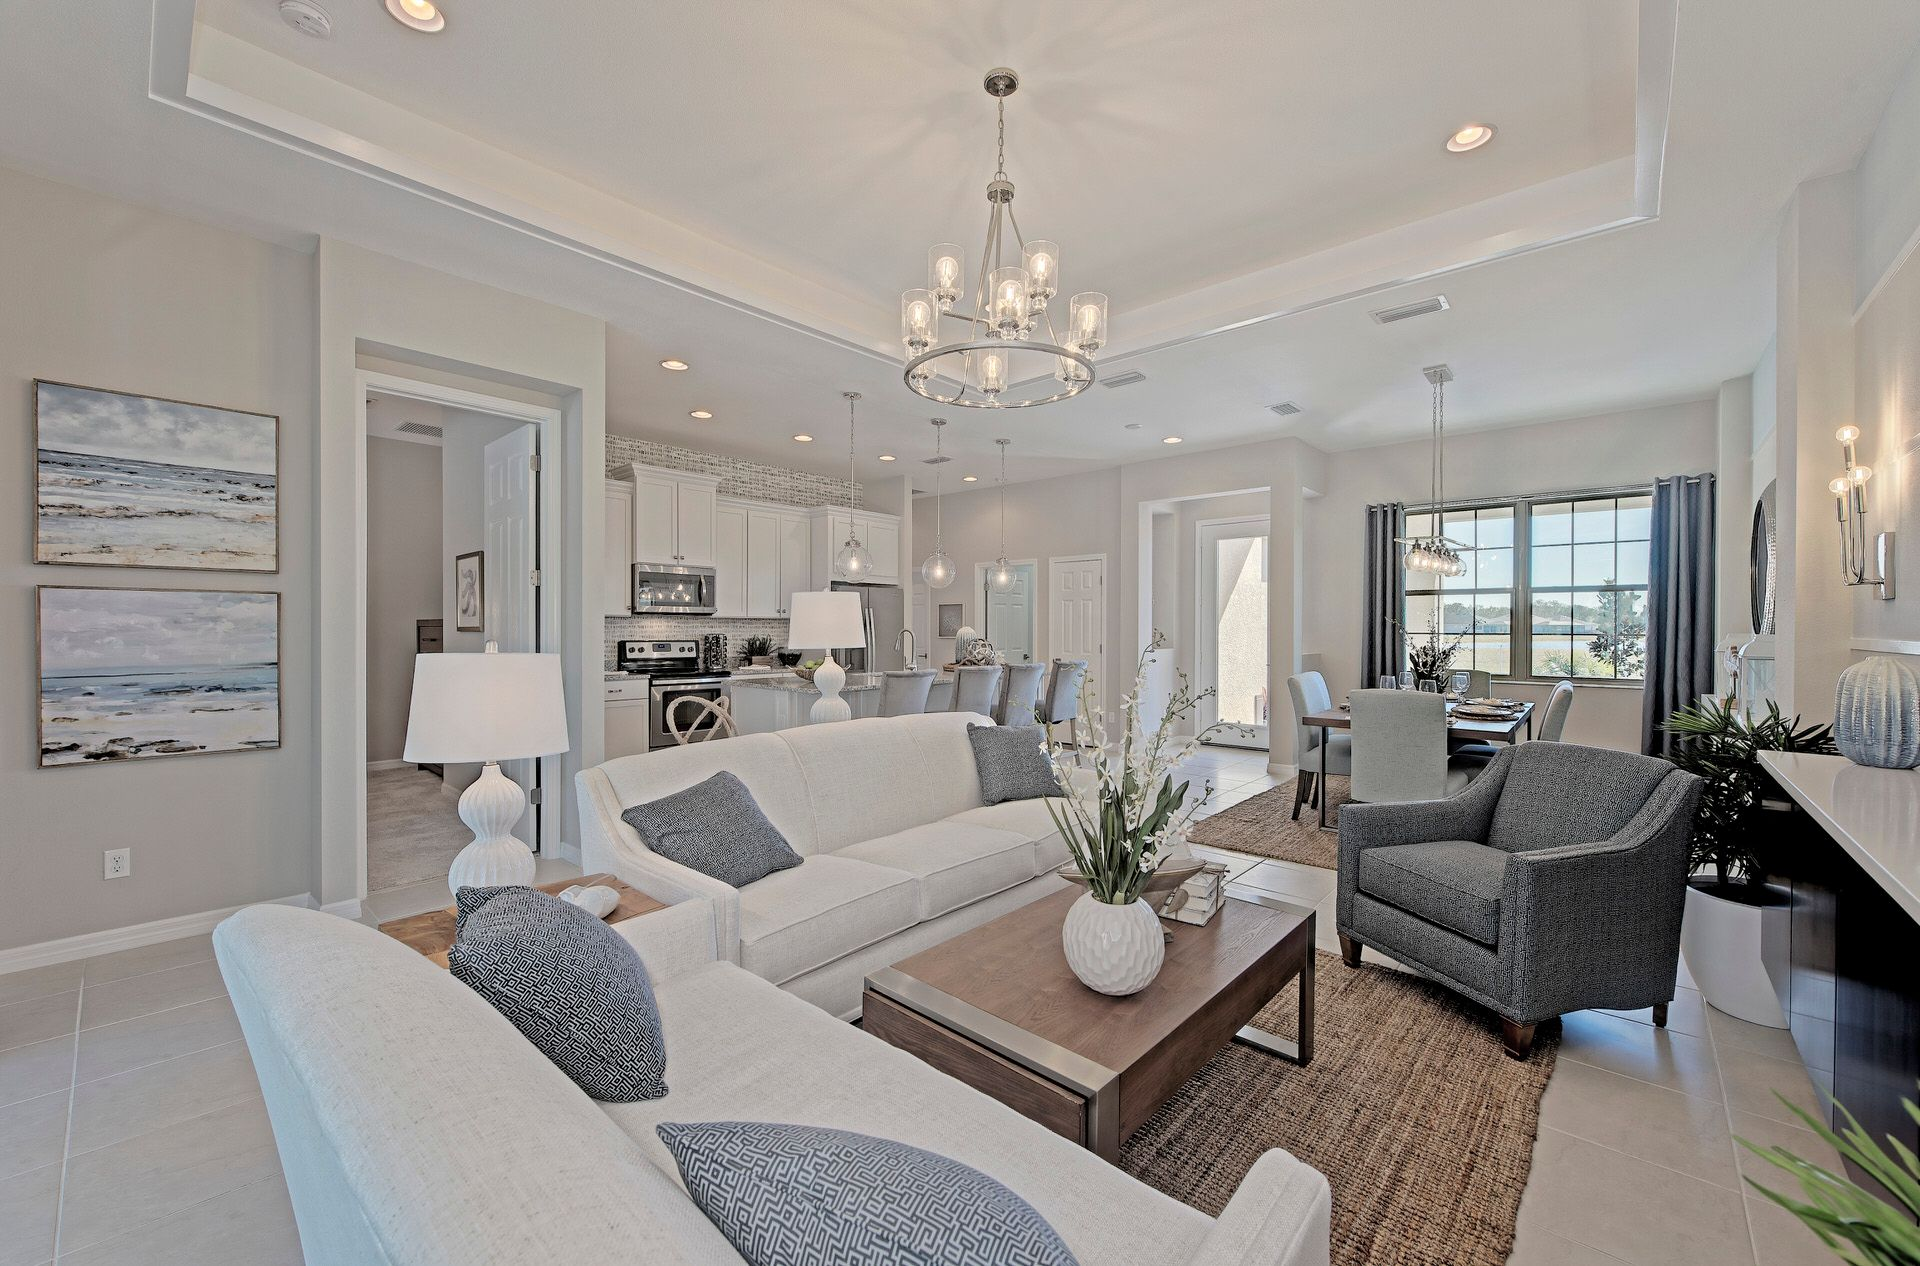 Living Area featured in the Harbour By Medallion Home in Sarasota-Bradenton, FL